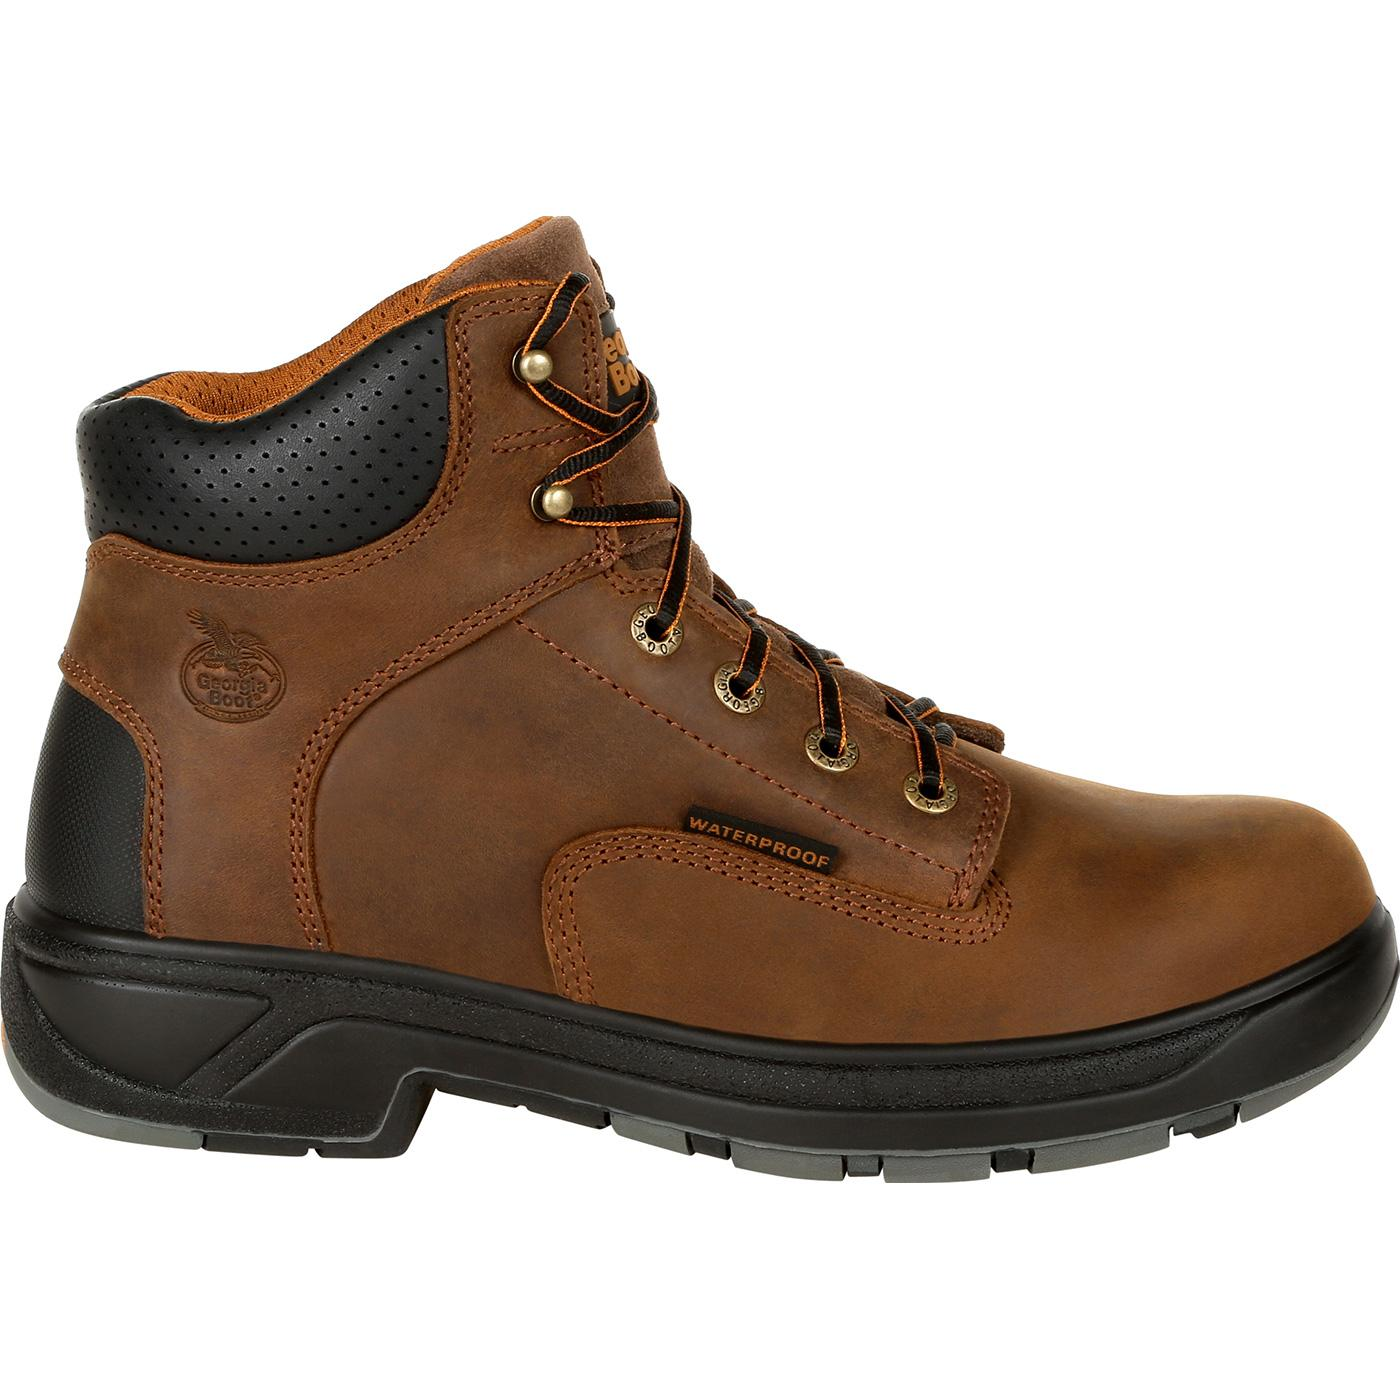 comfortable shoes for work boot s flxpoint comfort waterproof work boots 28510